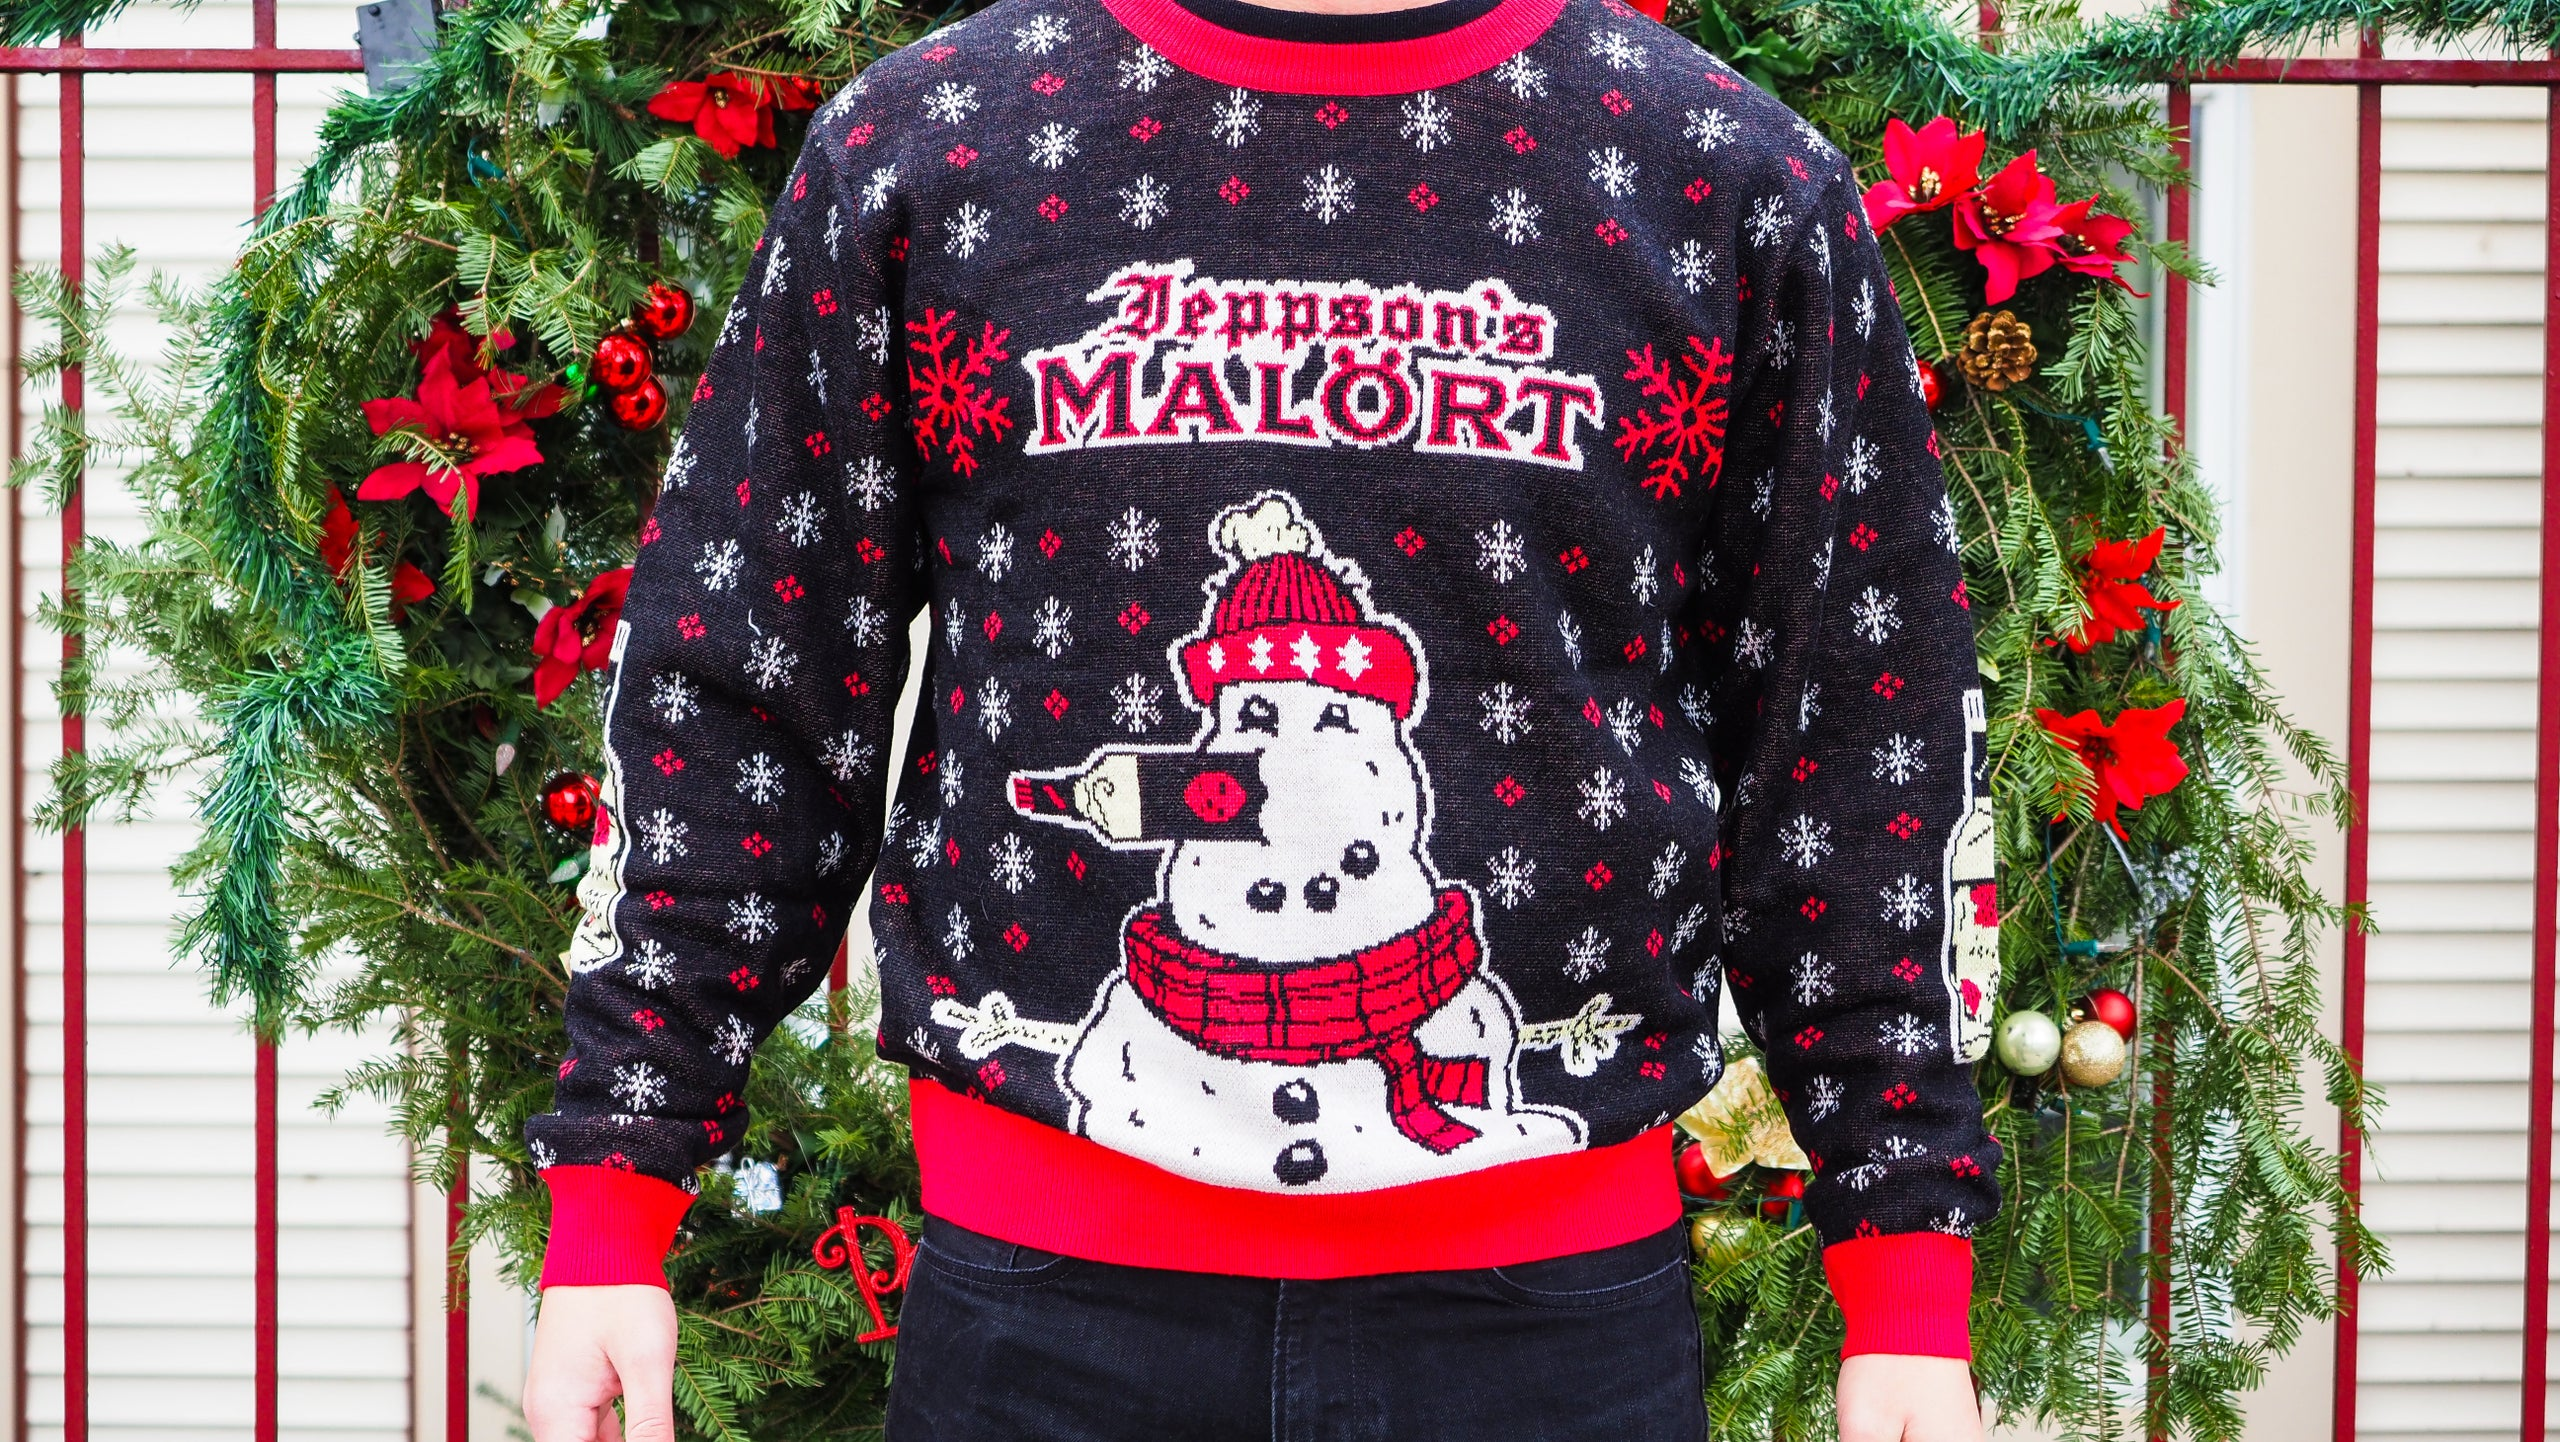 A person wearing an ugly Jeppson's Malört sweater